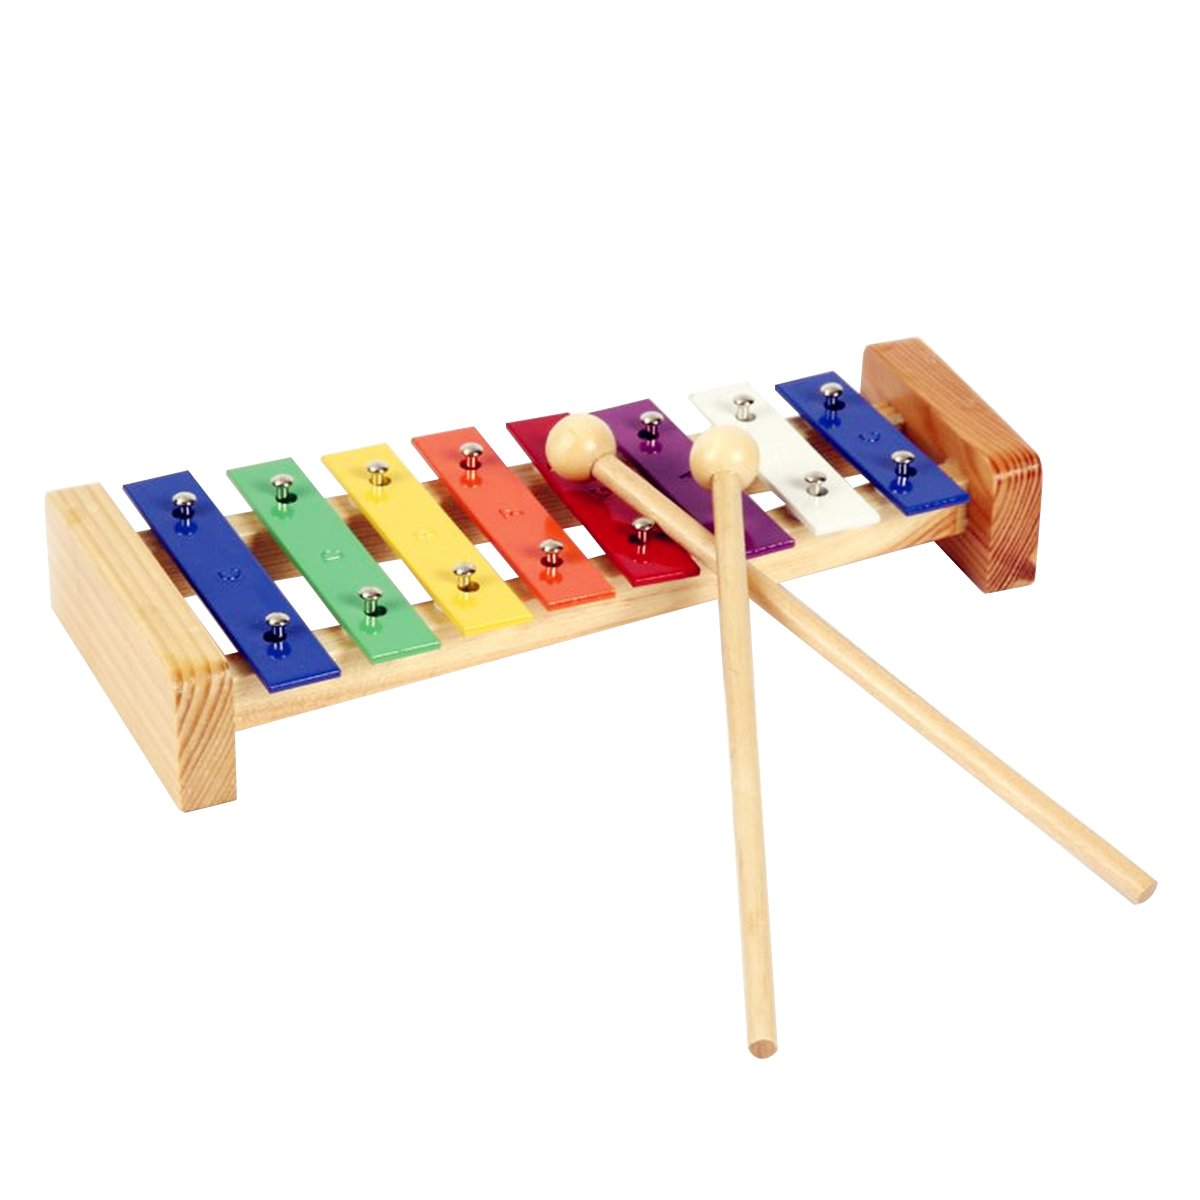 ROSENICE Wood Percussion Xylophone Musical Toy with with Bright Multi-Colored Key for Kid 160317ITTP35075